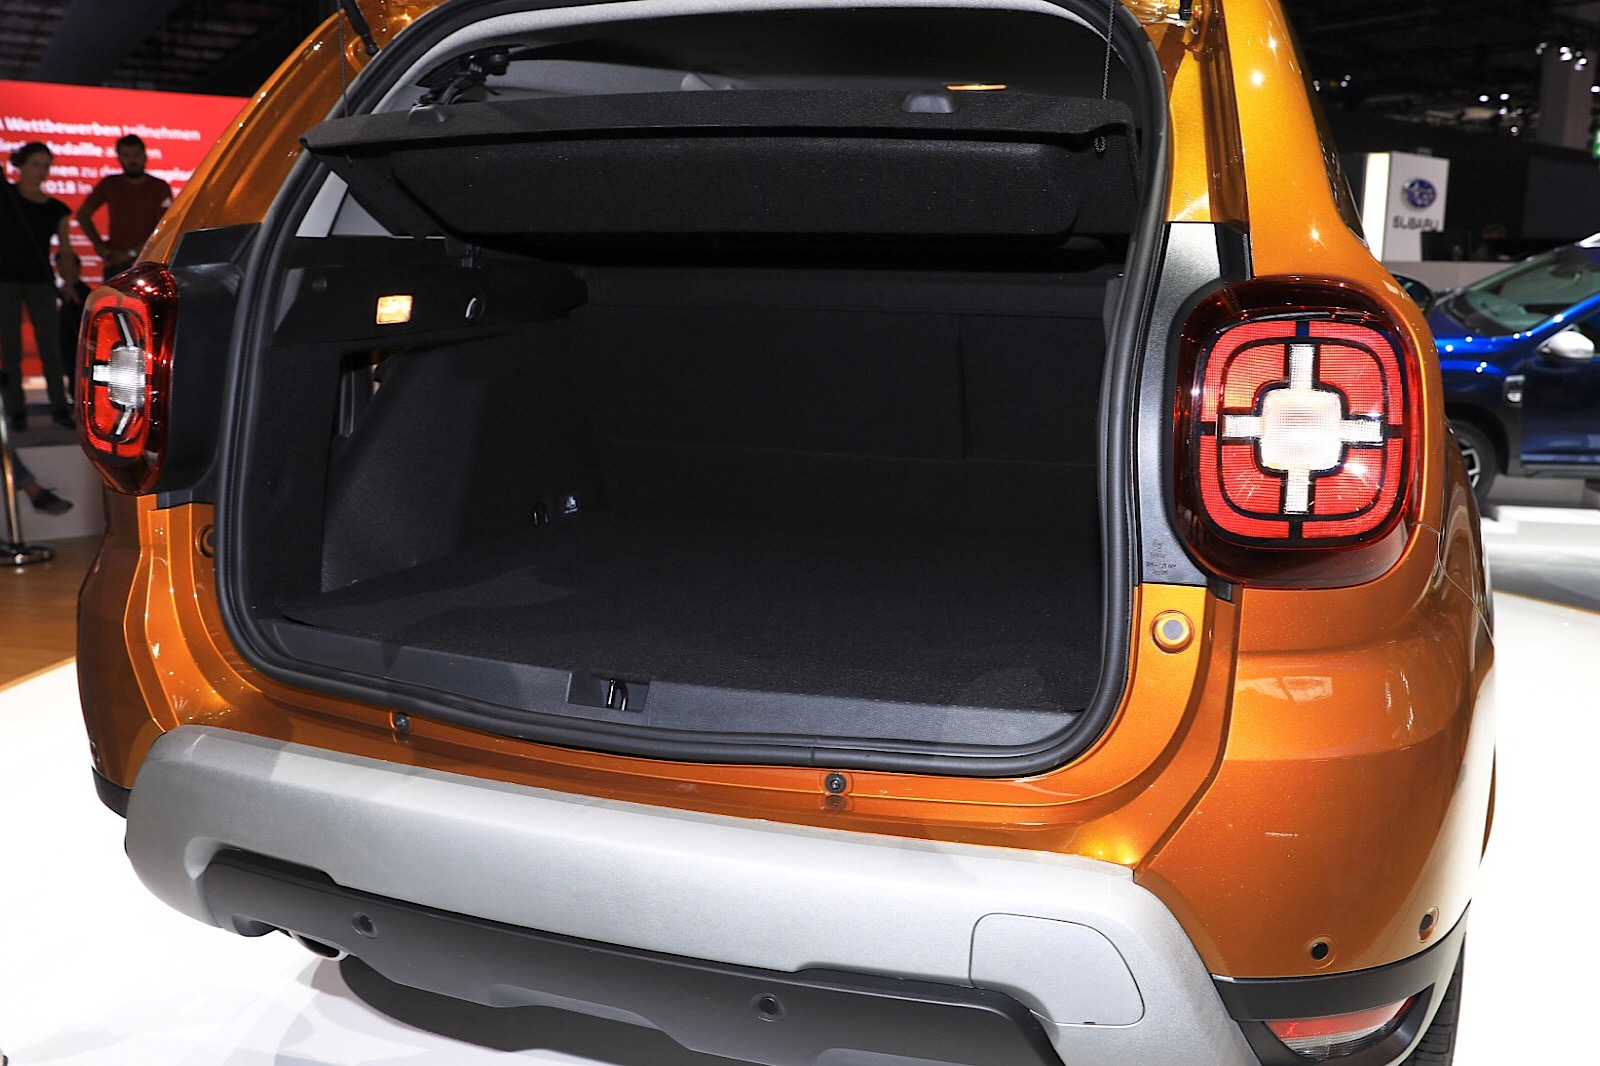 100 renault duster 2018 renault cars at auto expo 2018 upcoming new launches by renault. Black Bedroom Furniture Sets. Home Design Ideas